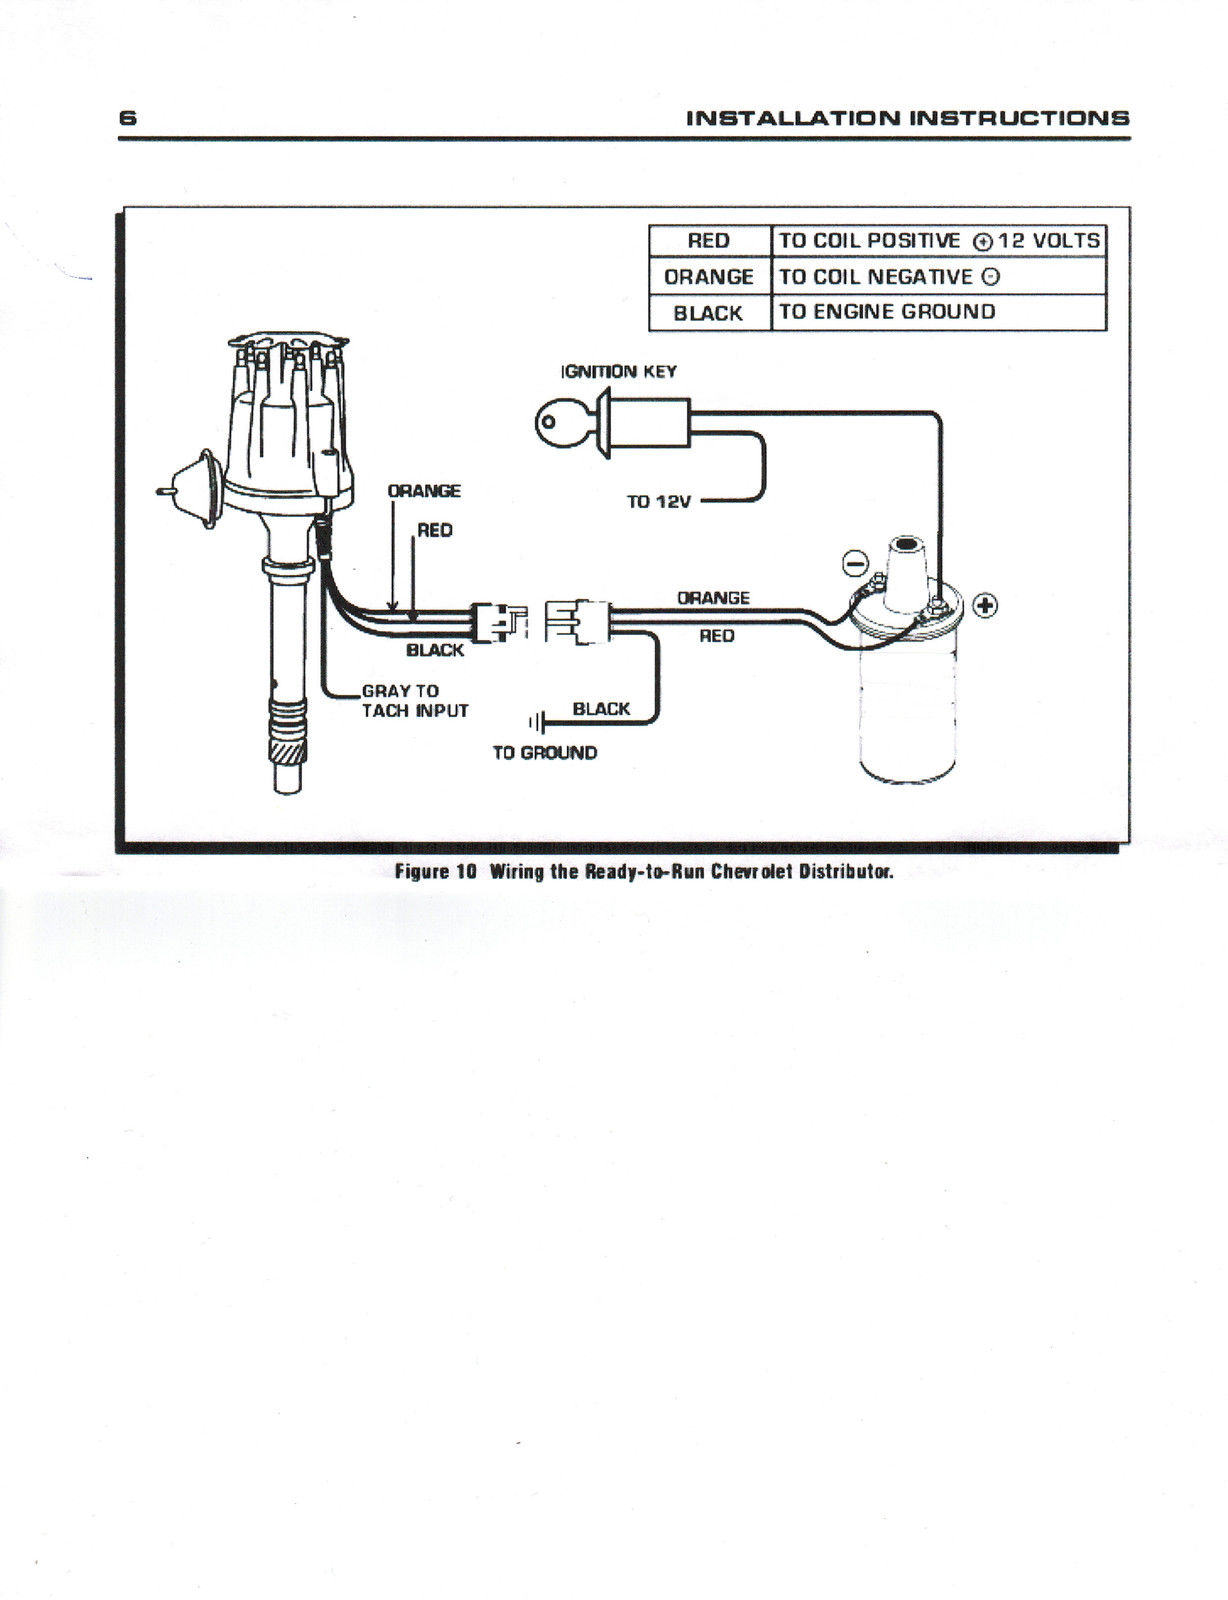 Mallory Hei Distributor Wiring Diagram | Wiring Diagram on jeep grand cherokee fuse box diagram, jeep jk wiring harness, jeep wrangler, jeep zj wiring diagram, volkswagen golf wiring diagram, chevrolet impala wiring diagram, ford thunderbird wiring diagram, jeep to chevy wiring harness, chrysler crossfire wiring diagram, volkswagen cabriolet wiring diagram, 1991 jeep cherokee fuse box diagram, jeep cj7 wiring-diagram, ford bronco wiring diagram, suzuki xl7 wiring diagram, jeep starter wiring, acura tl wiring diagram, 95 jeep wiring diagram, cadillac xlr wiring diagram, 2007 jeep liberty wiring diagram, 91 silverado wiring diagram,